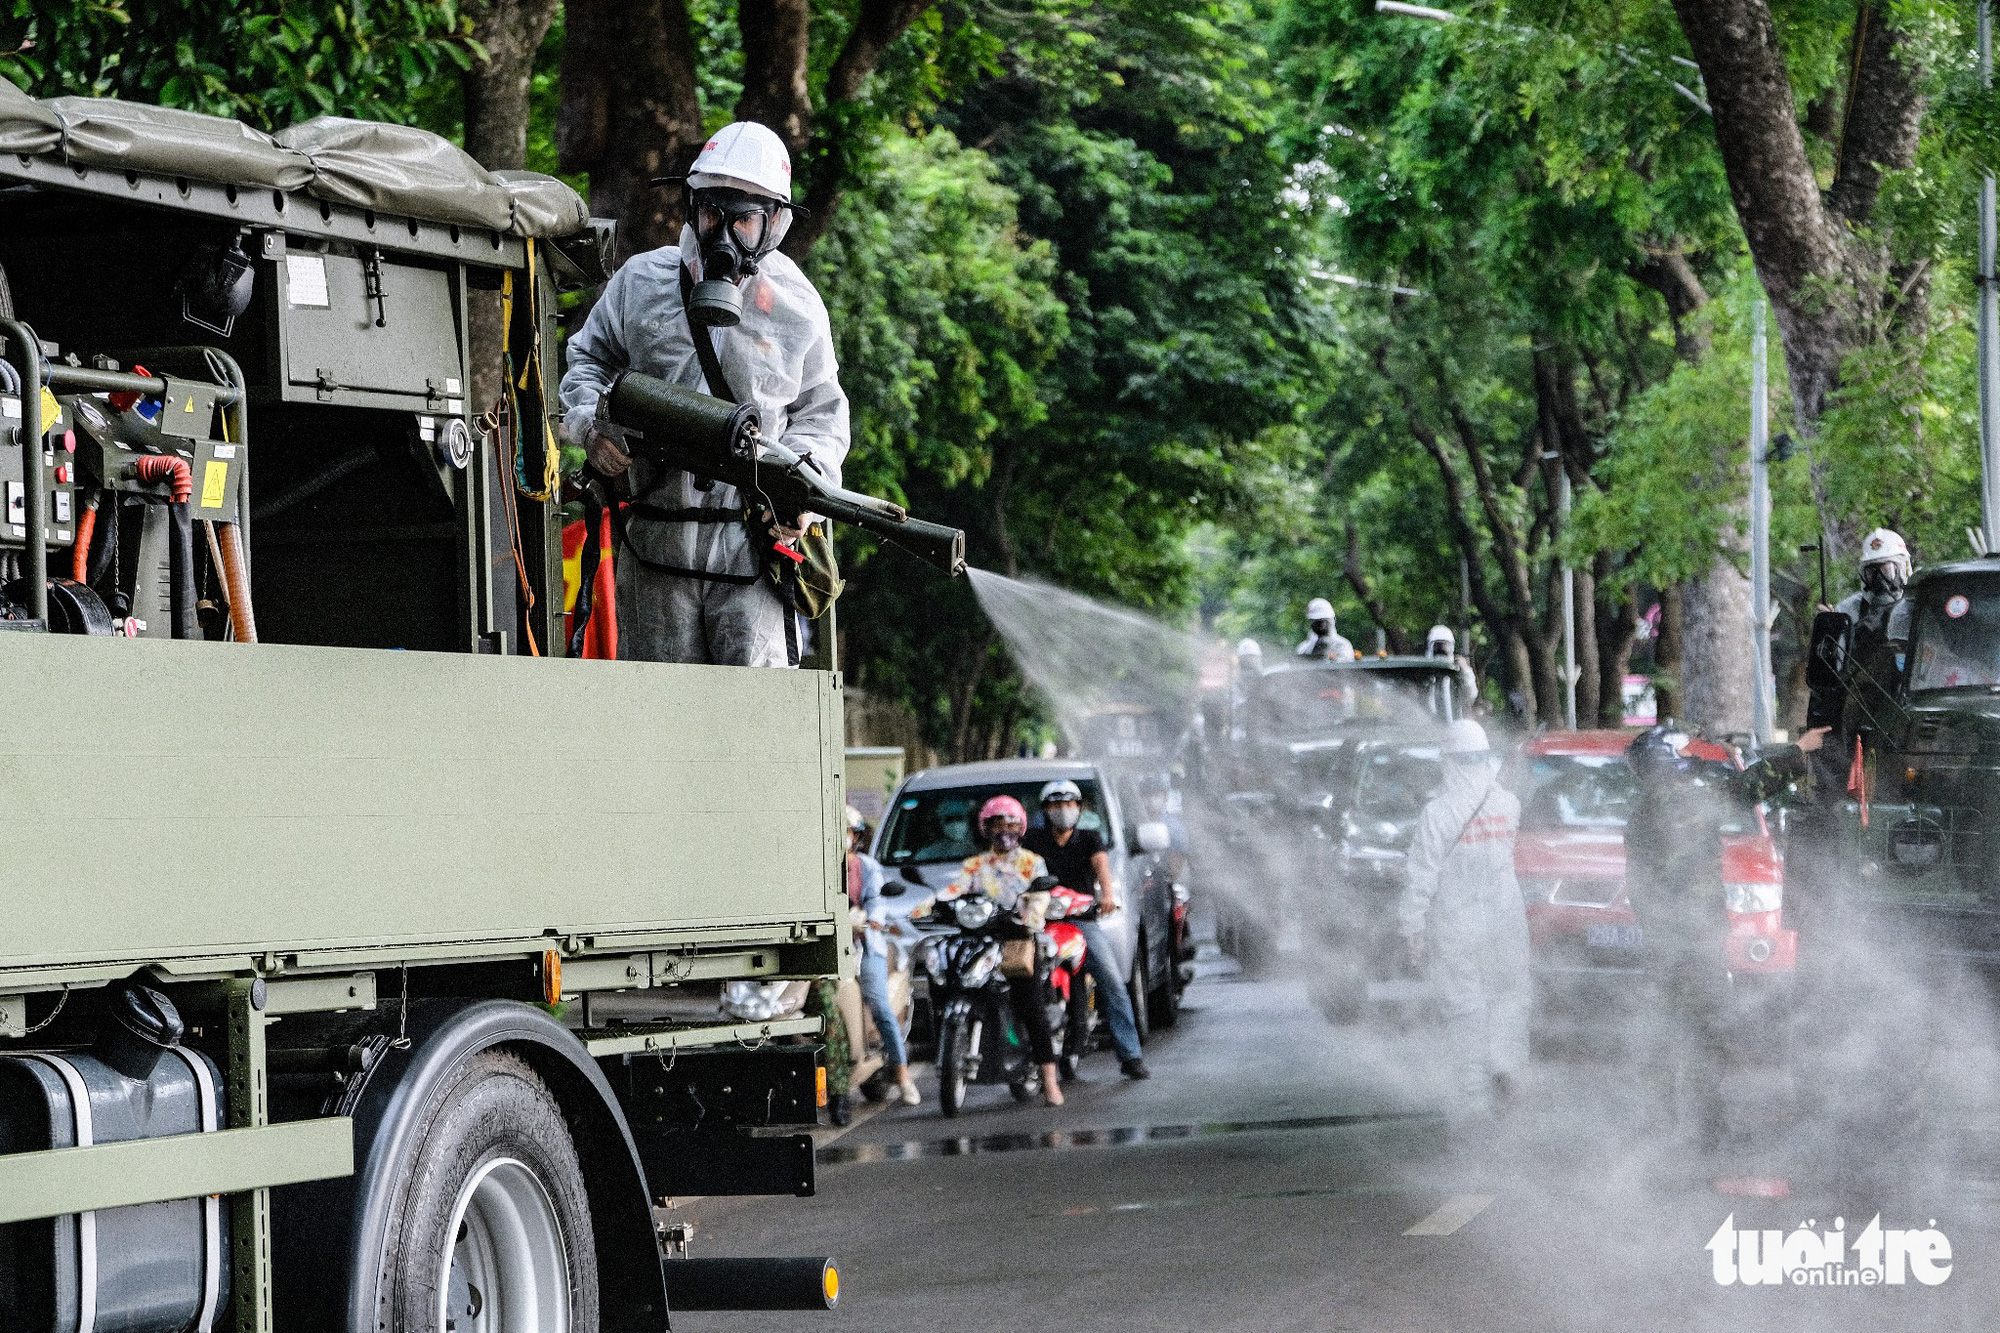 A soldier sprays chemical from atop a specialized vehicle to disinfect a street in Hoan Kiem District, Hanoi, July 26, 2021. Photo: Nam Tran / Tuoi Tre